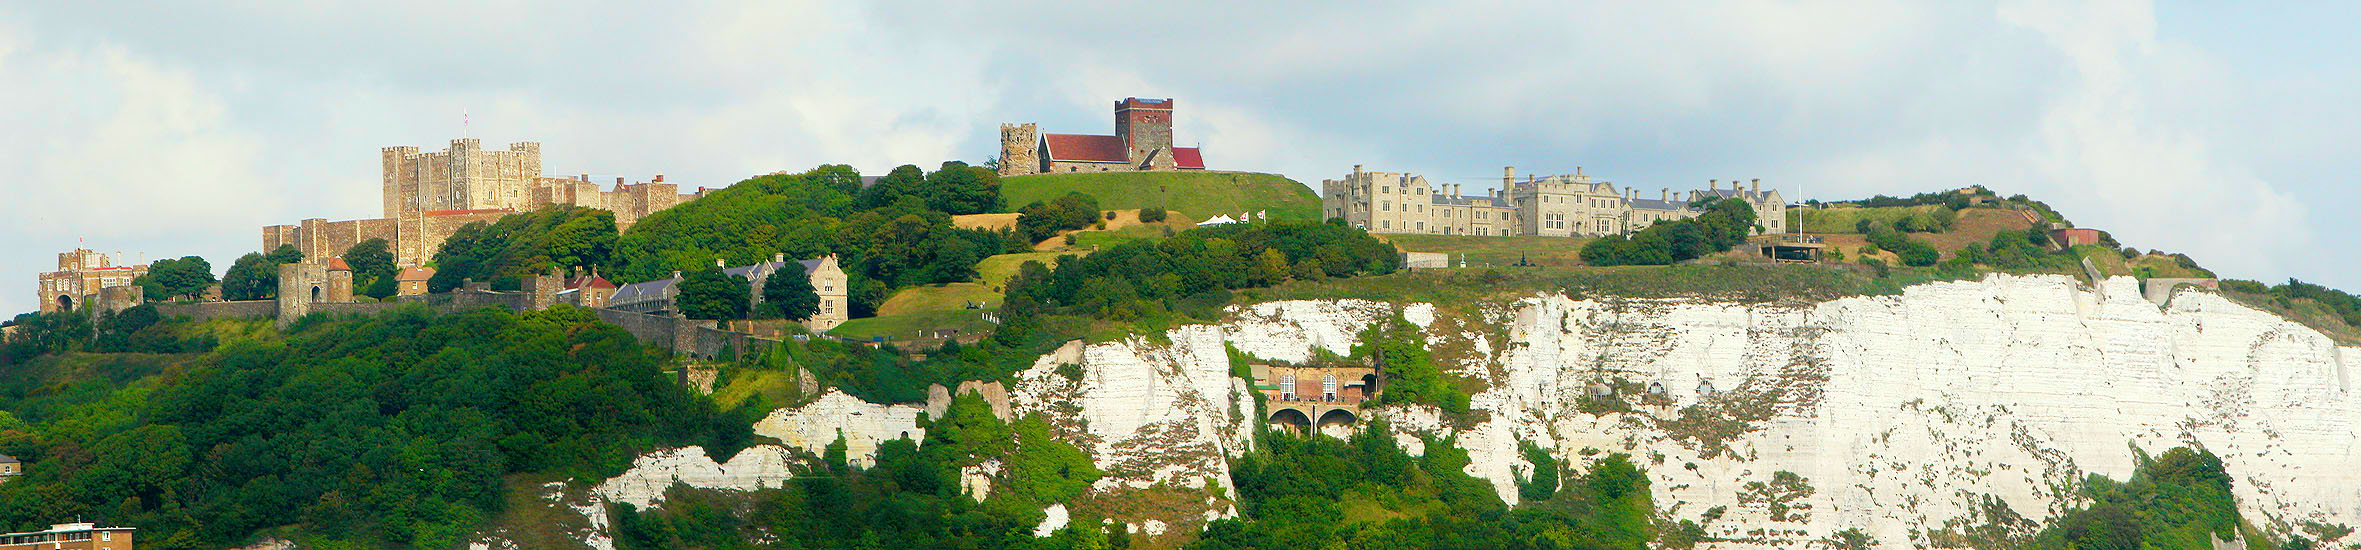 Dover castle kent uk originally saxon burnt down by the view of the castle from the english channel including the famous white cliffs sciox Image collections